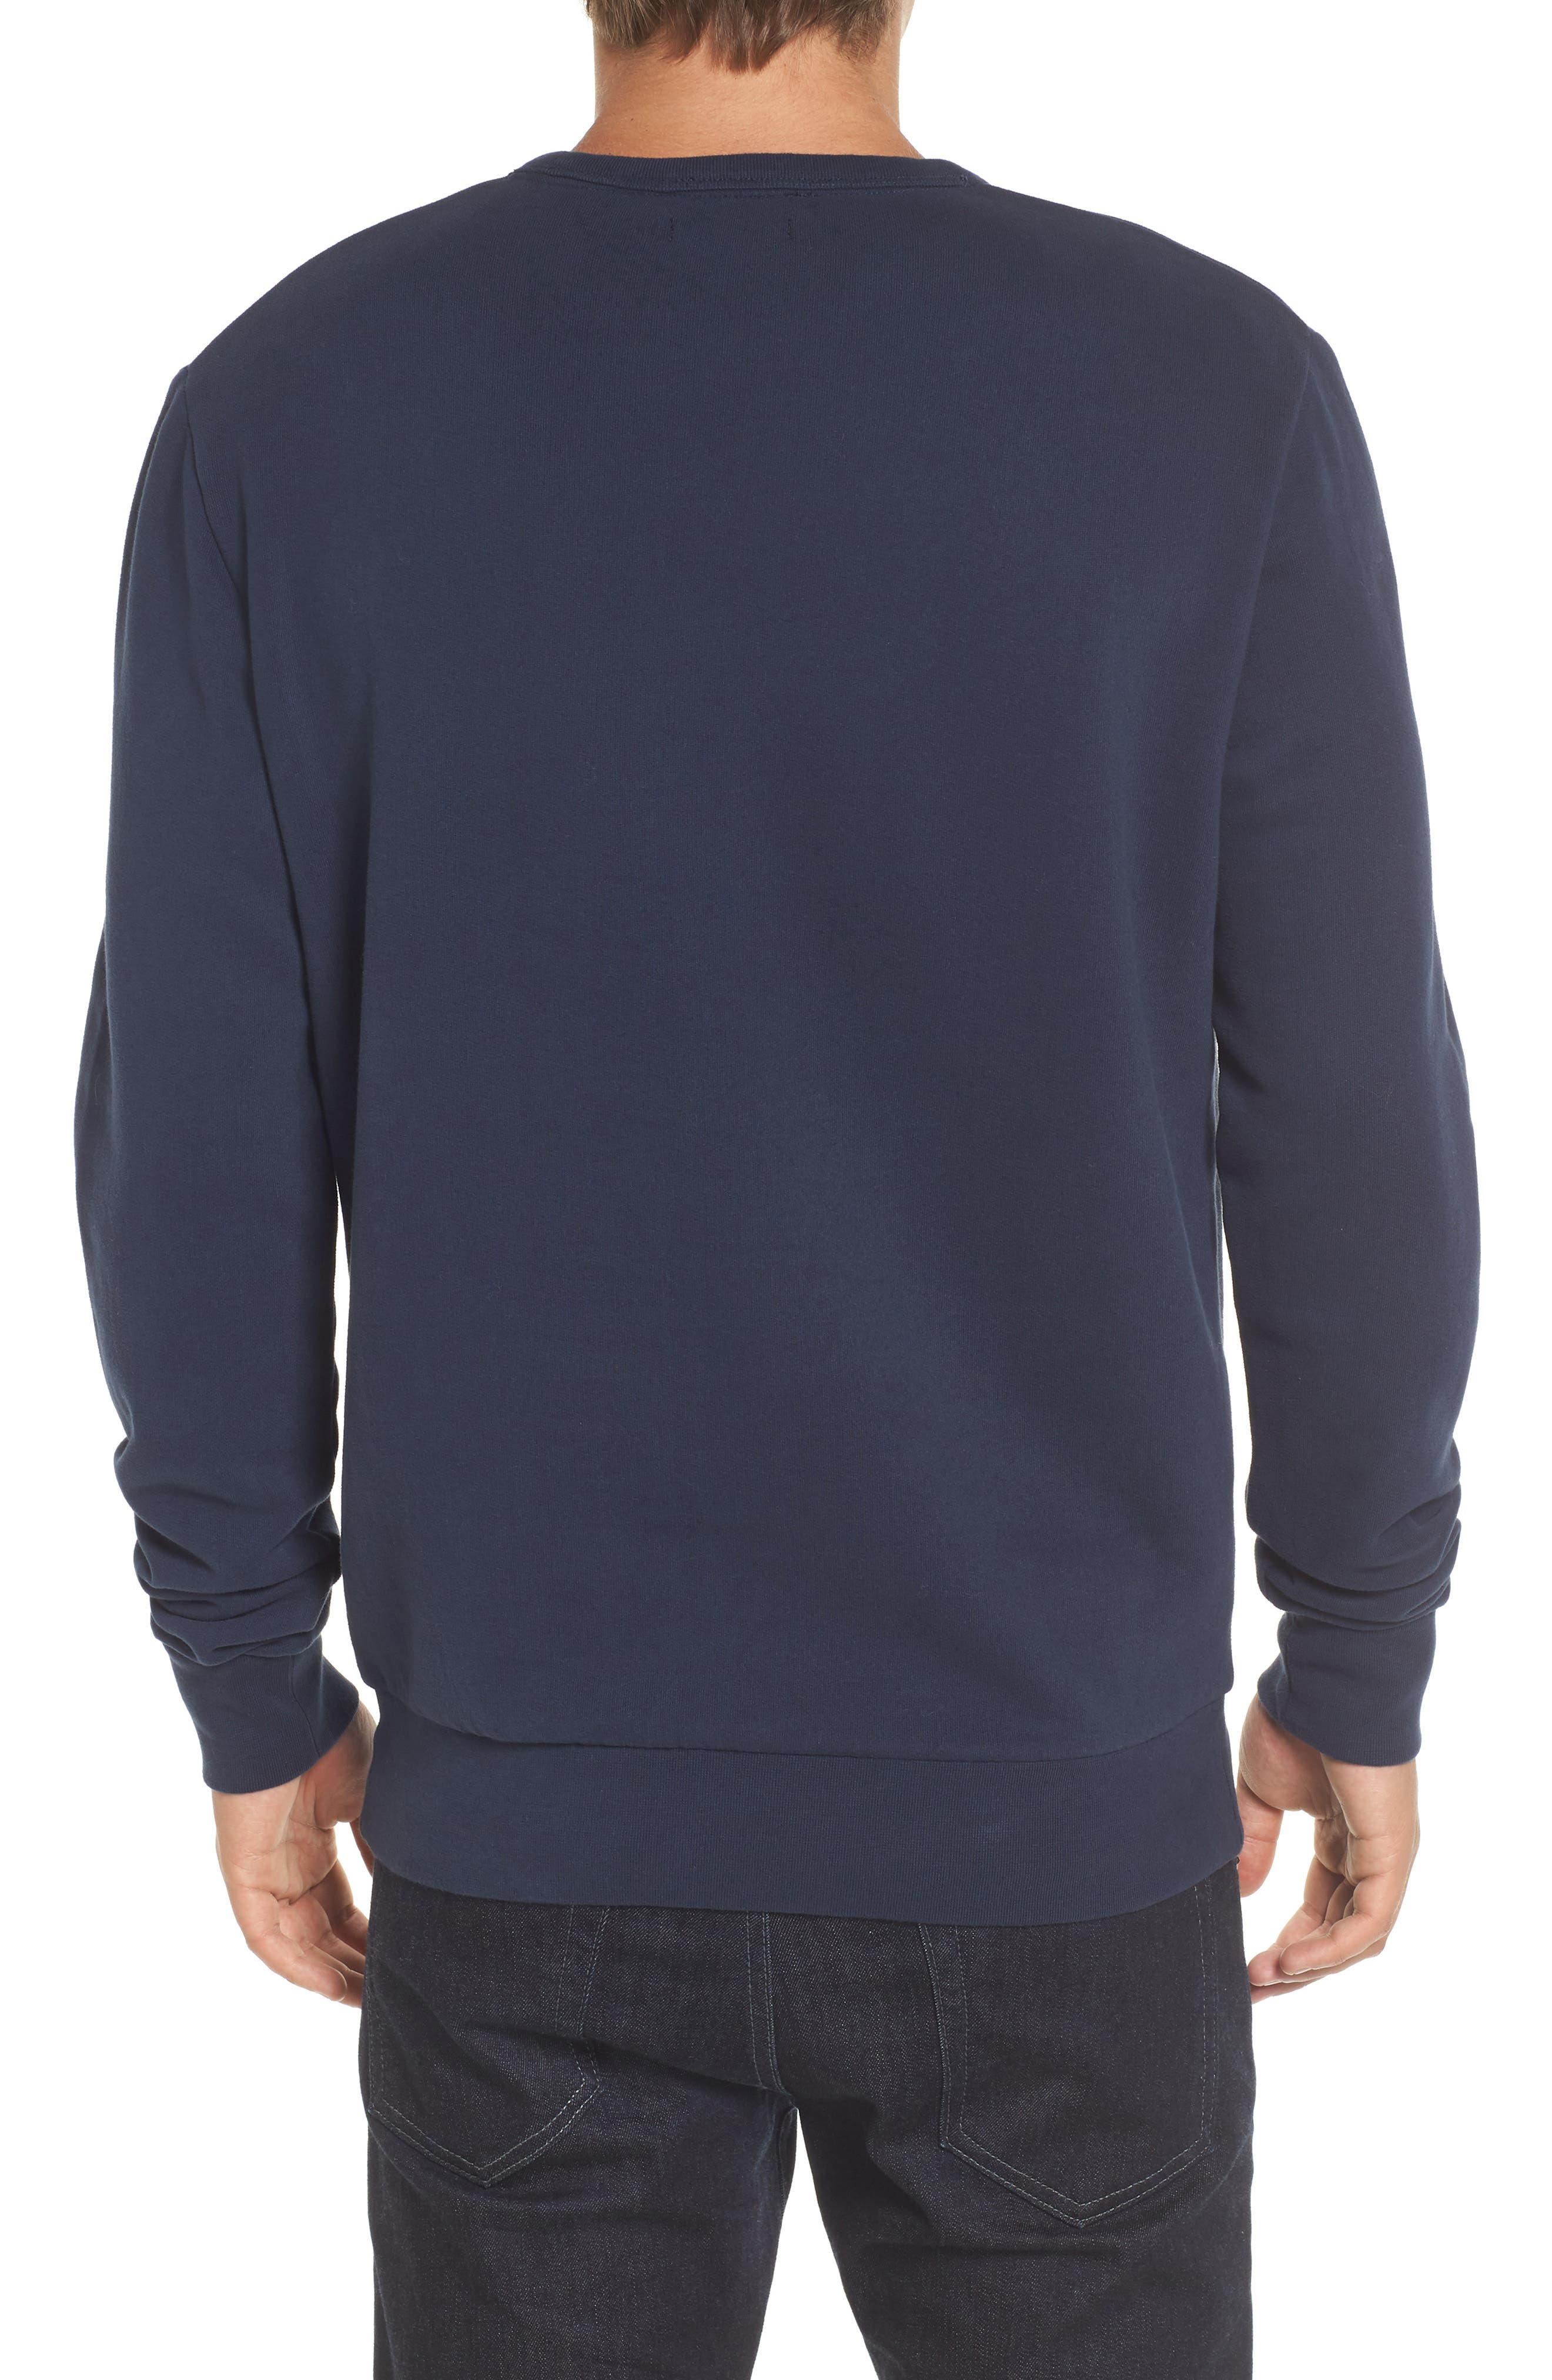 Alternate Image 2  - French Connection Salut Crewneck Sweater